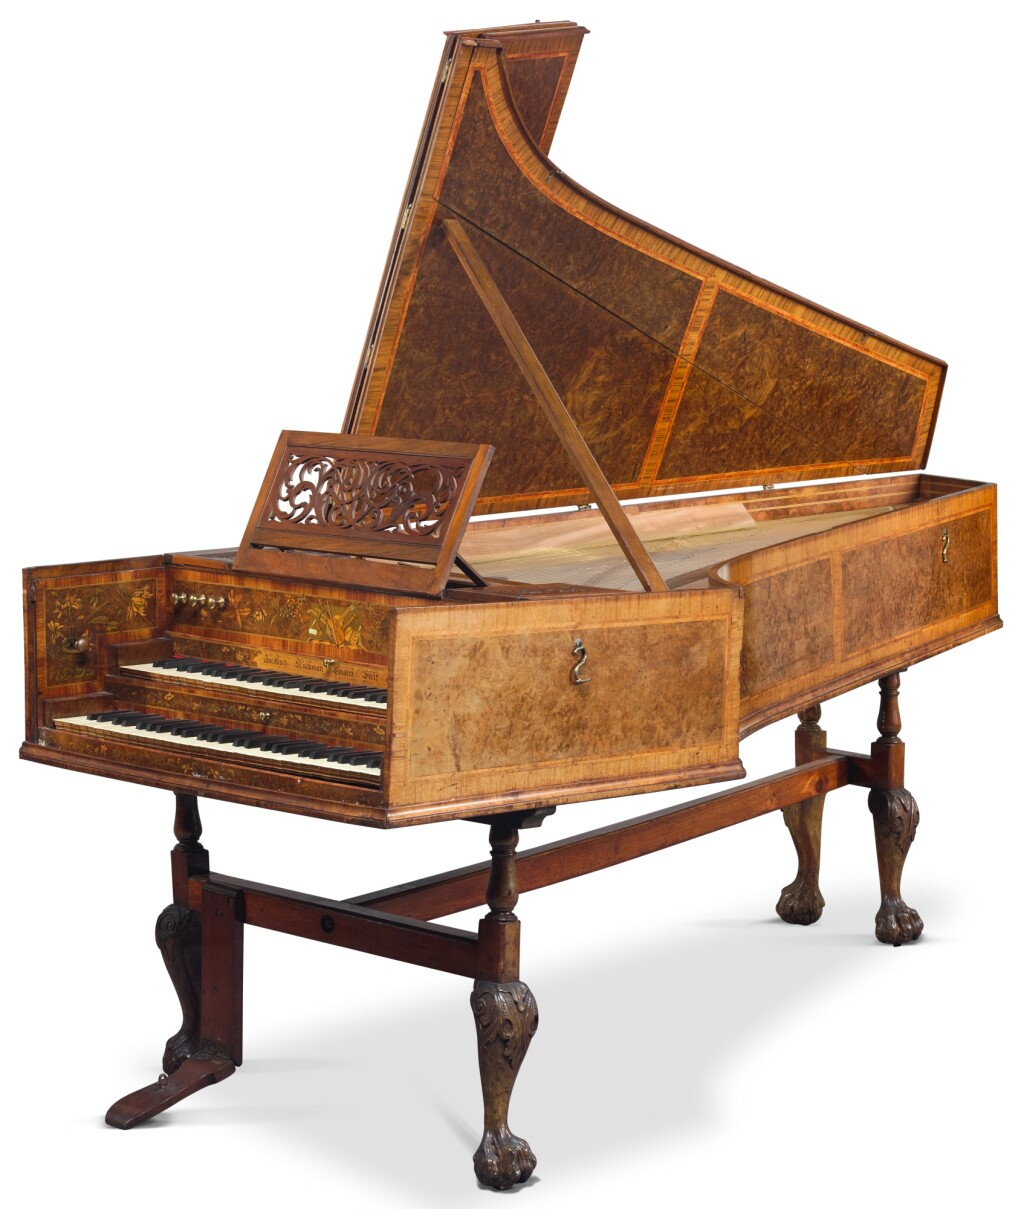 A TWO-MANUAL HARPSICHORD BY JACOB KIRKMAN, LONDON, 1766